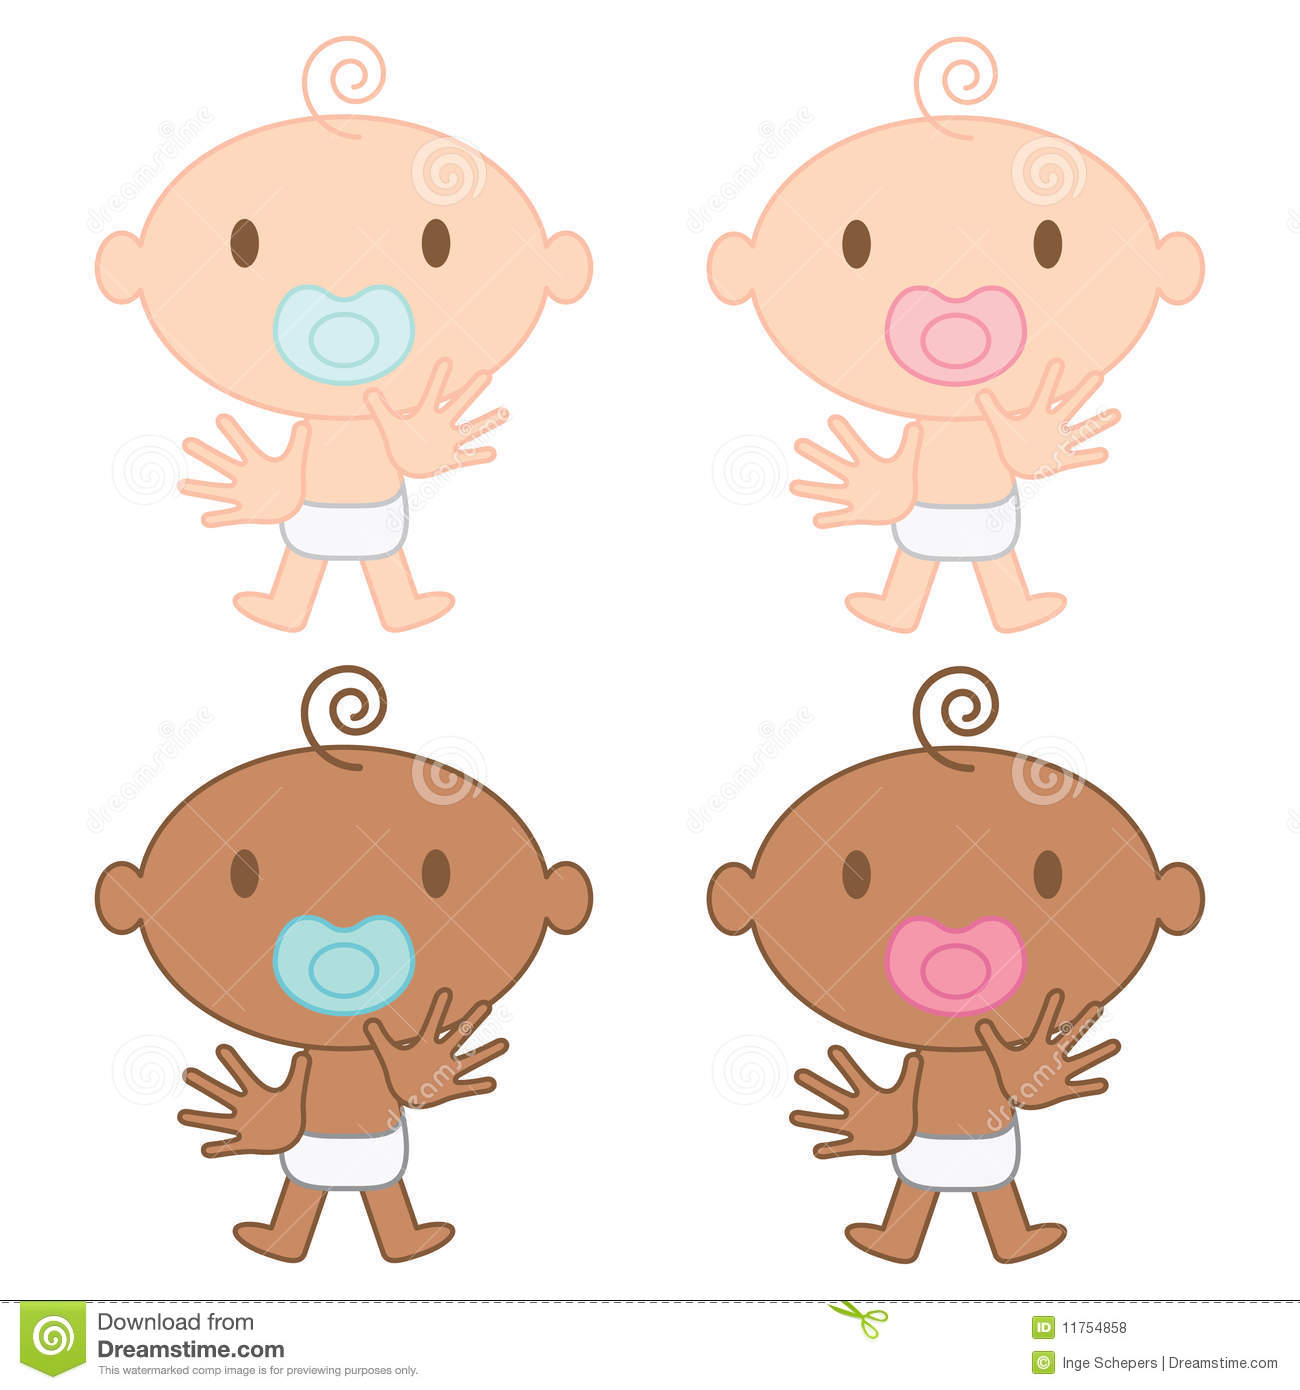 Multicultural Babies Illustration Royalty Free Stock Photos Image 11754858